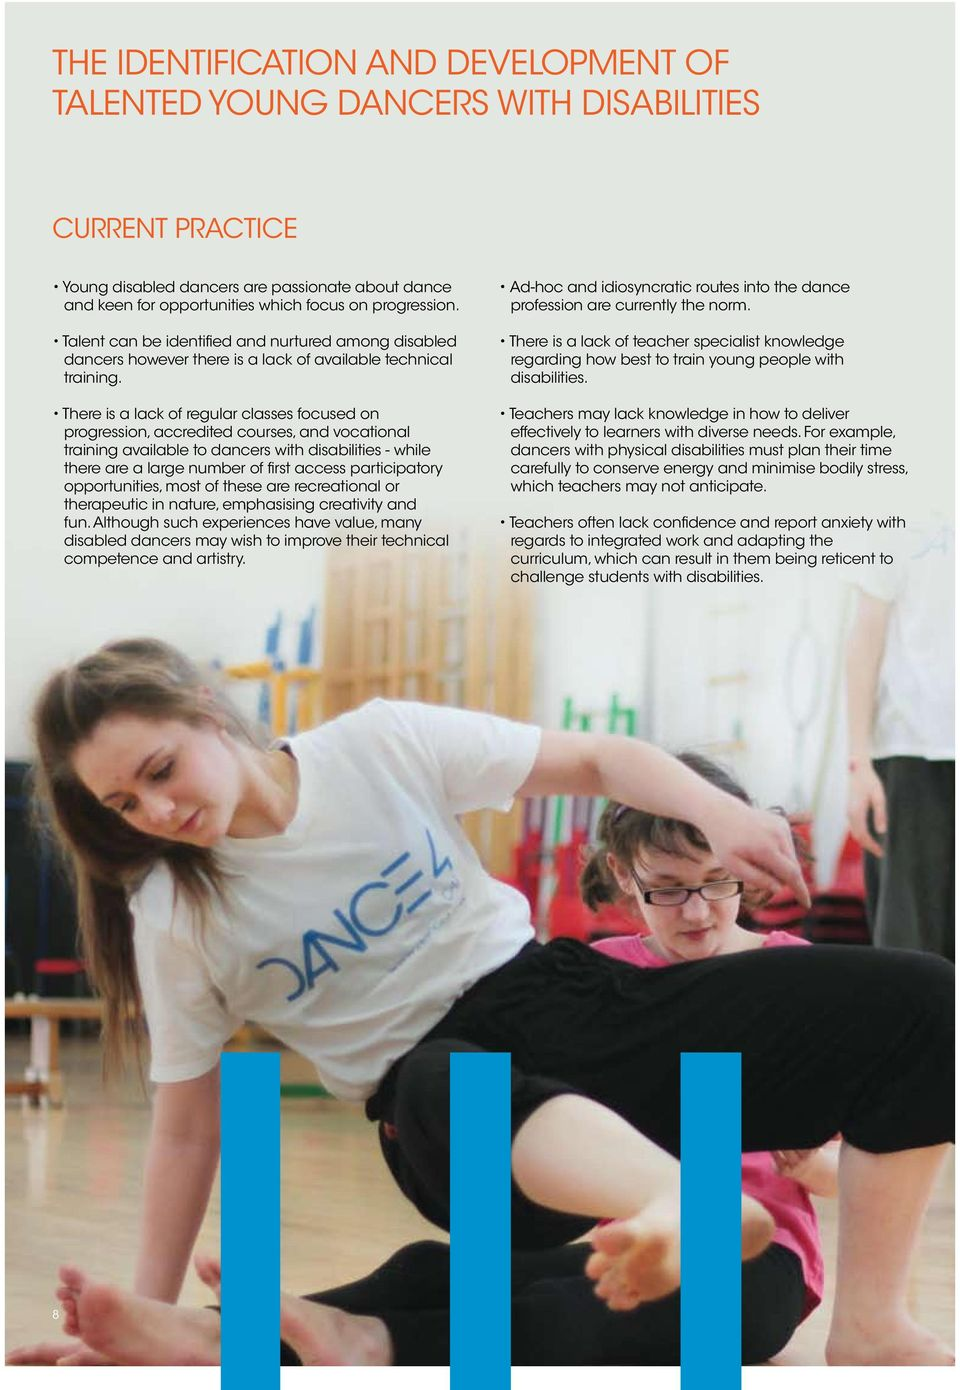 There is a lack of regular classes focused on progression, accredited courses, and vocational training available to dancers with disabilities - while there are a large number of first access